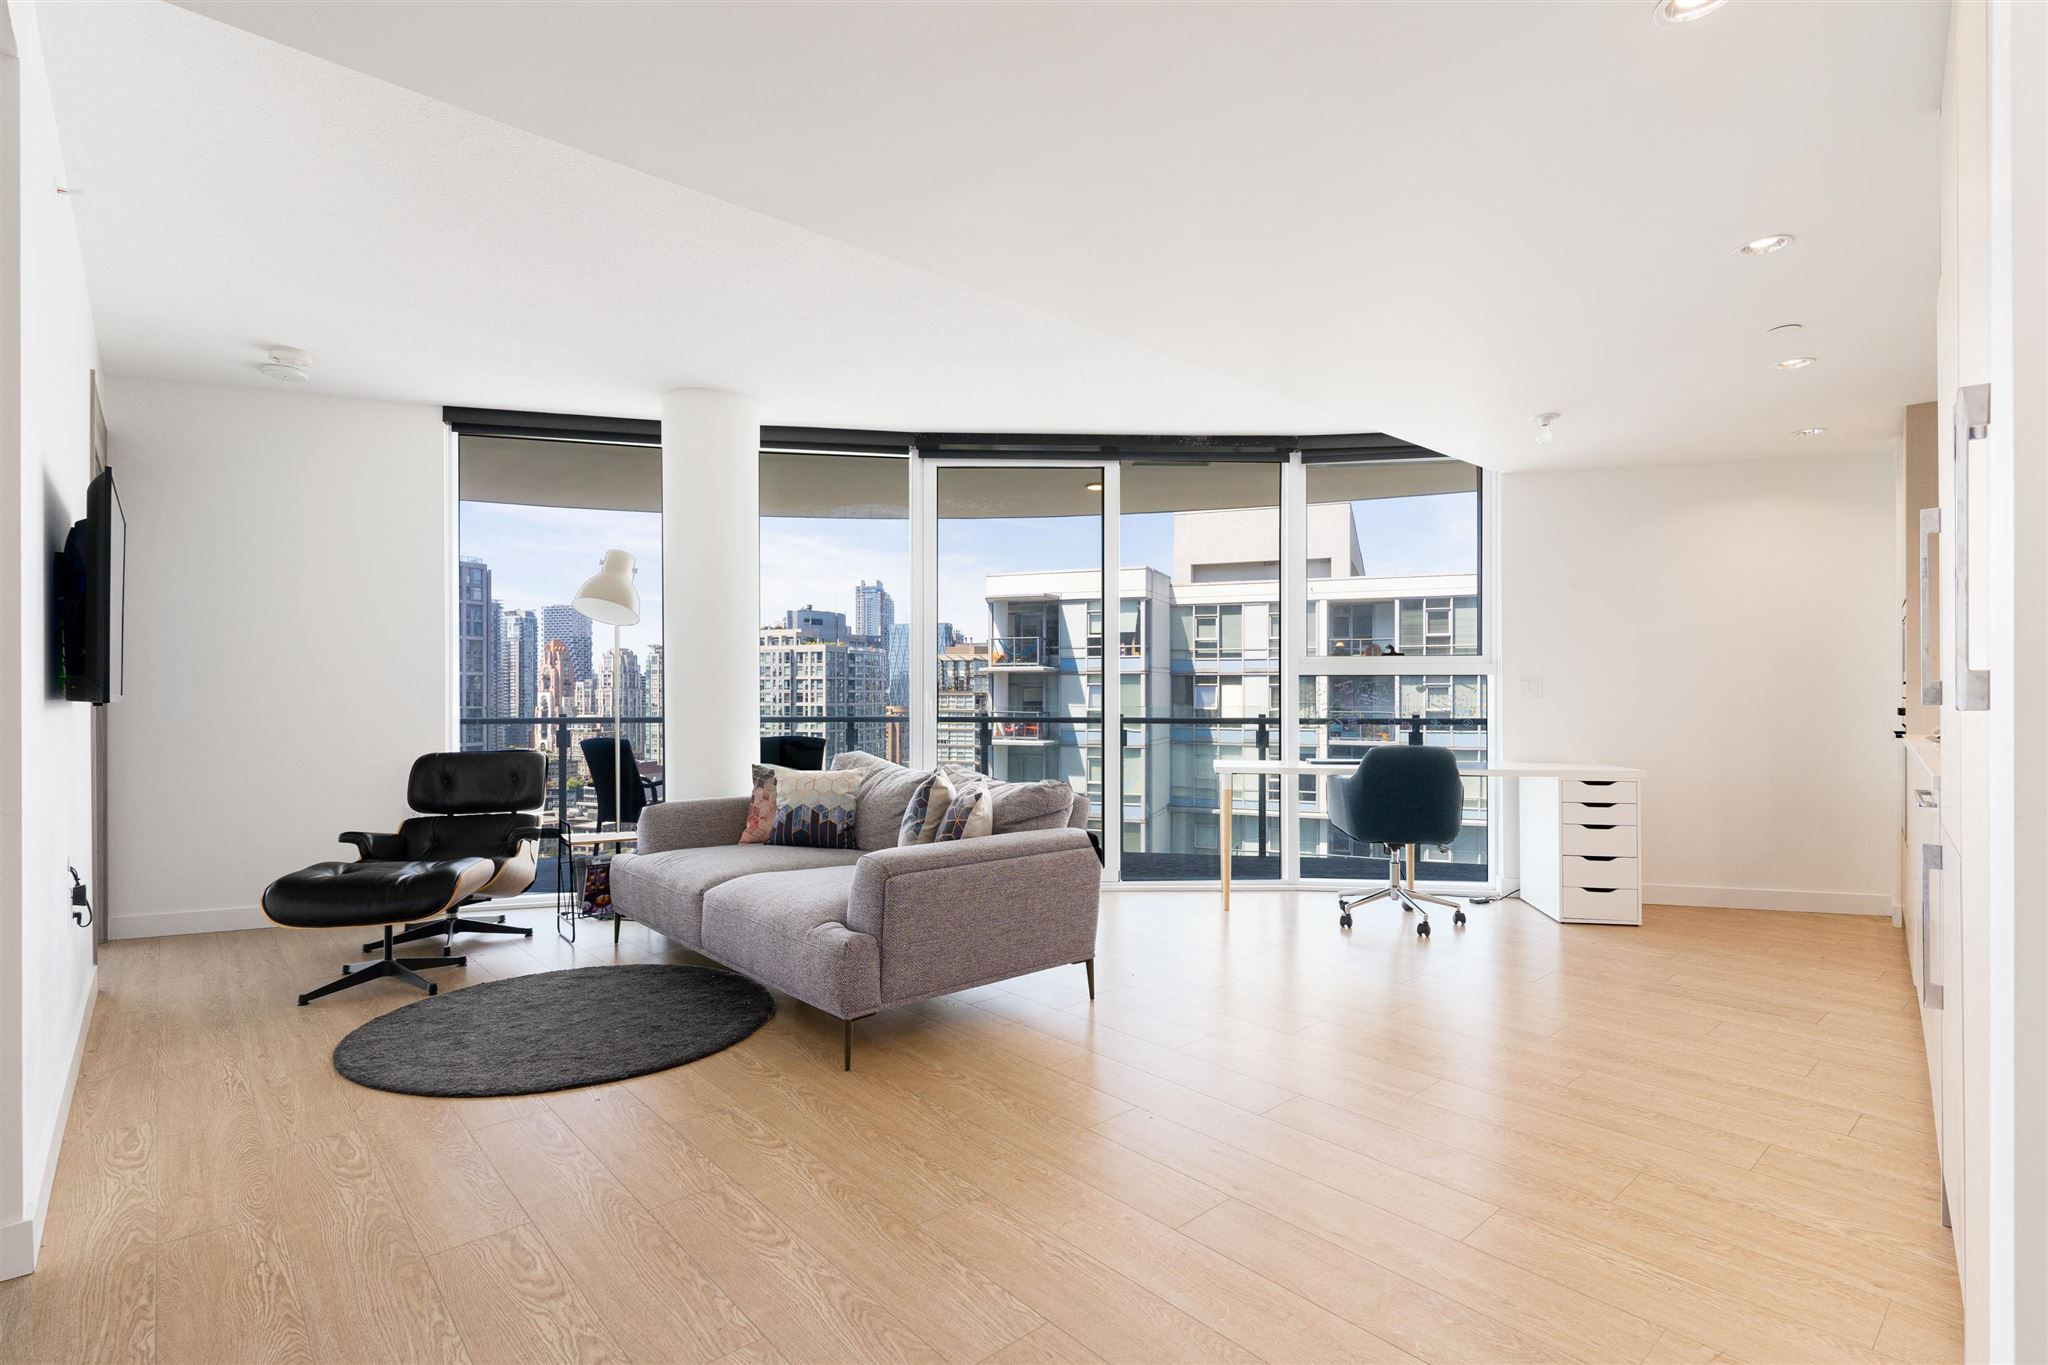 """Main Photo: Videos: 2405 89 NELSON Street in Vancouver: Yaletown Condo for sale in """"THE ARC"""" (Vancouver West)  : MLS®# R2594695"""